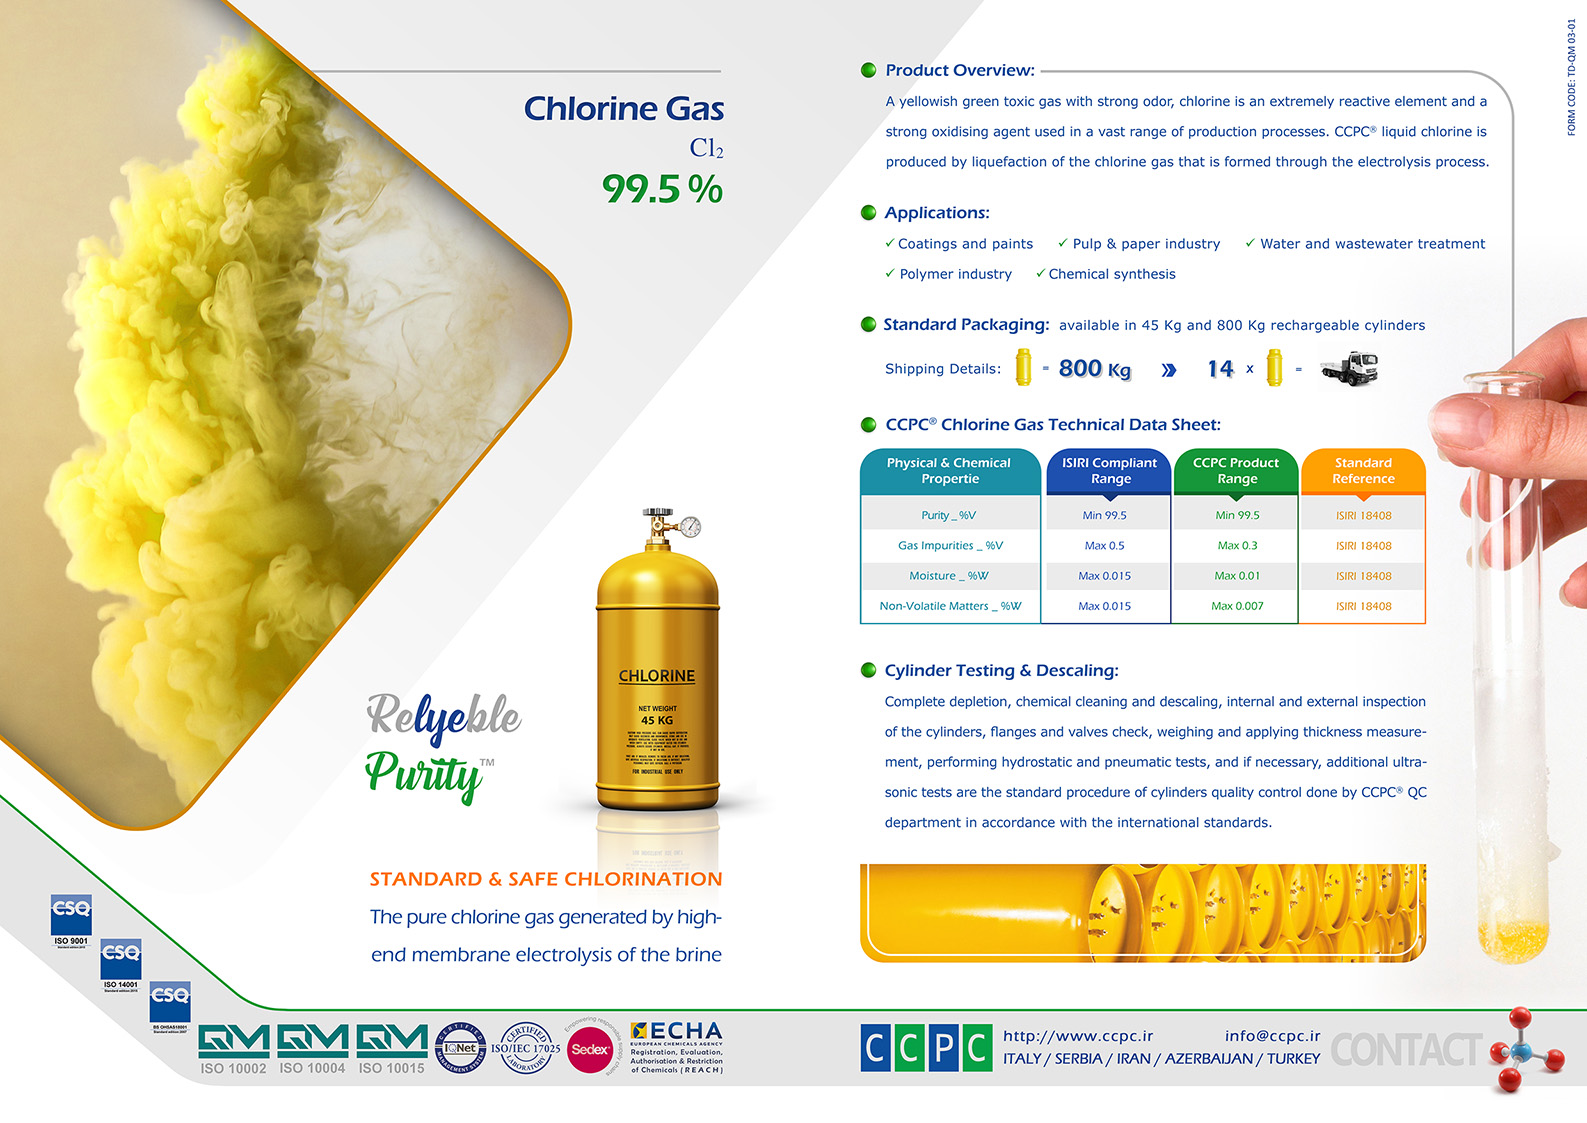 16 Chlorine Gas Pages